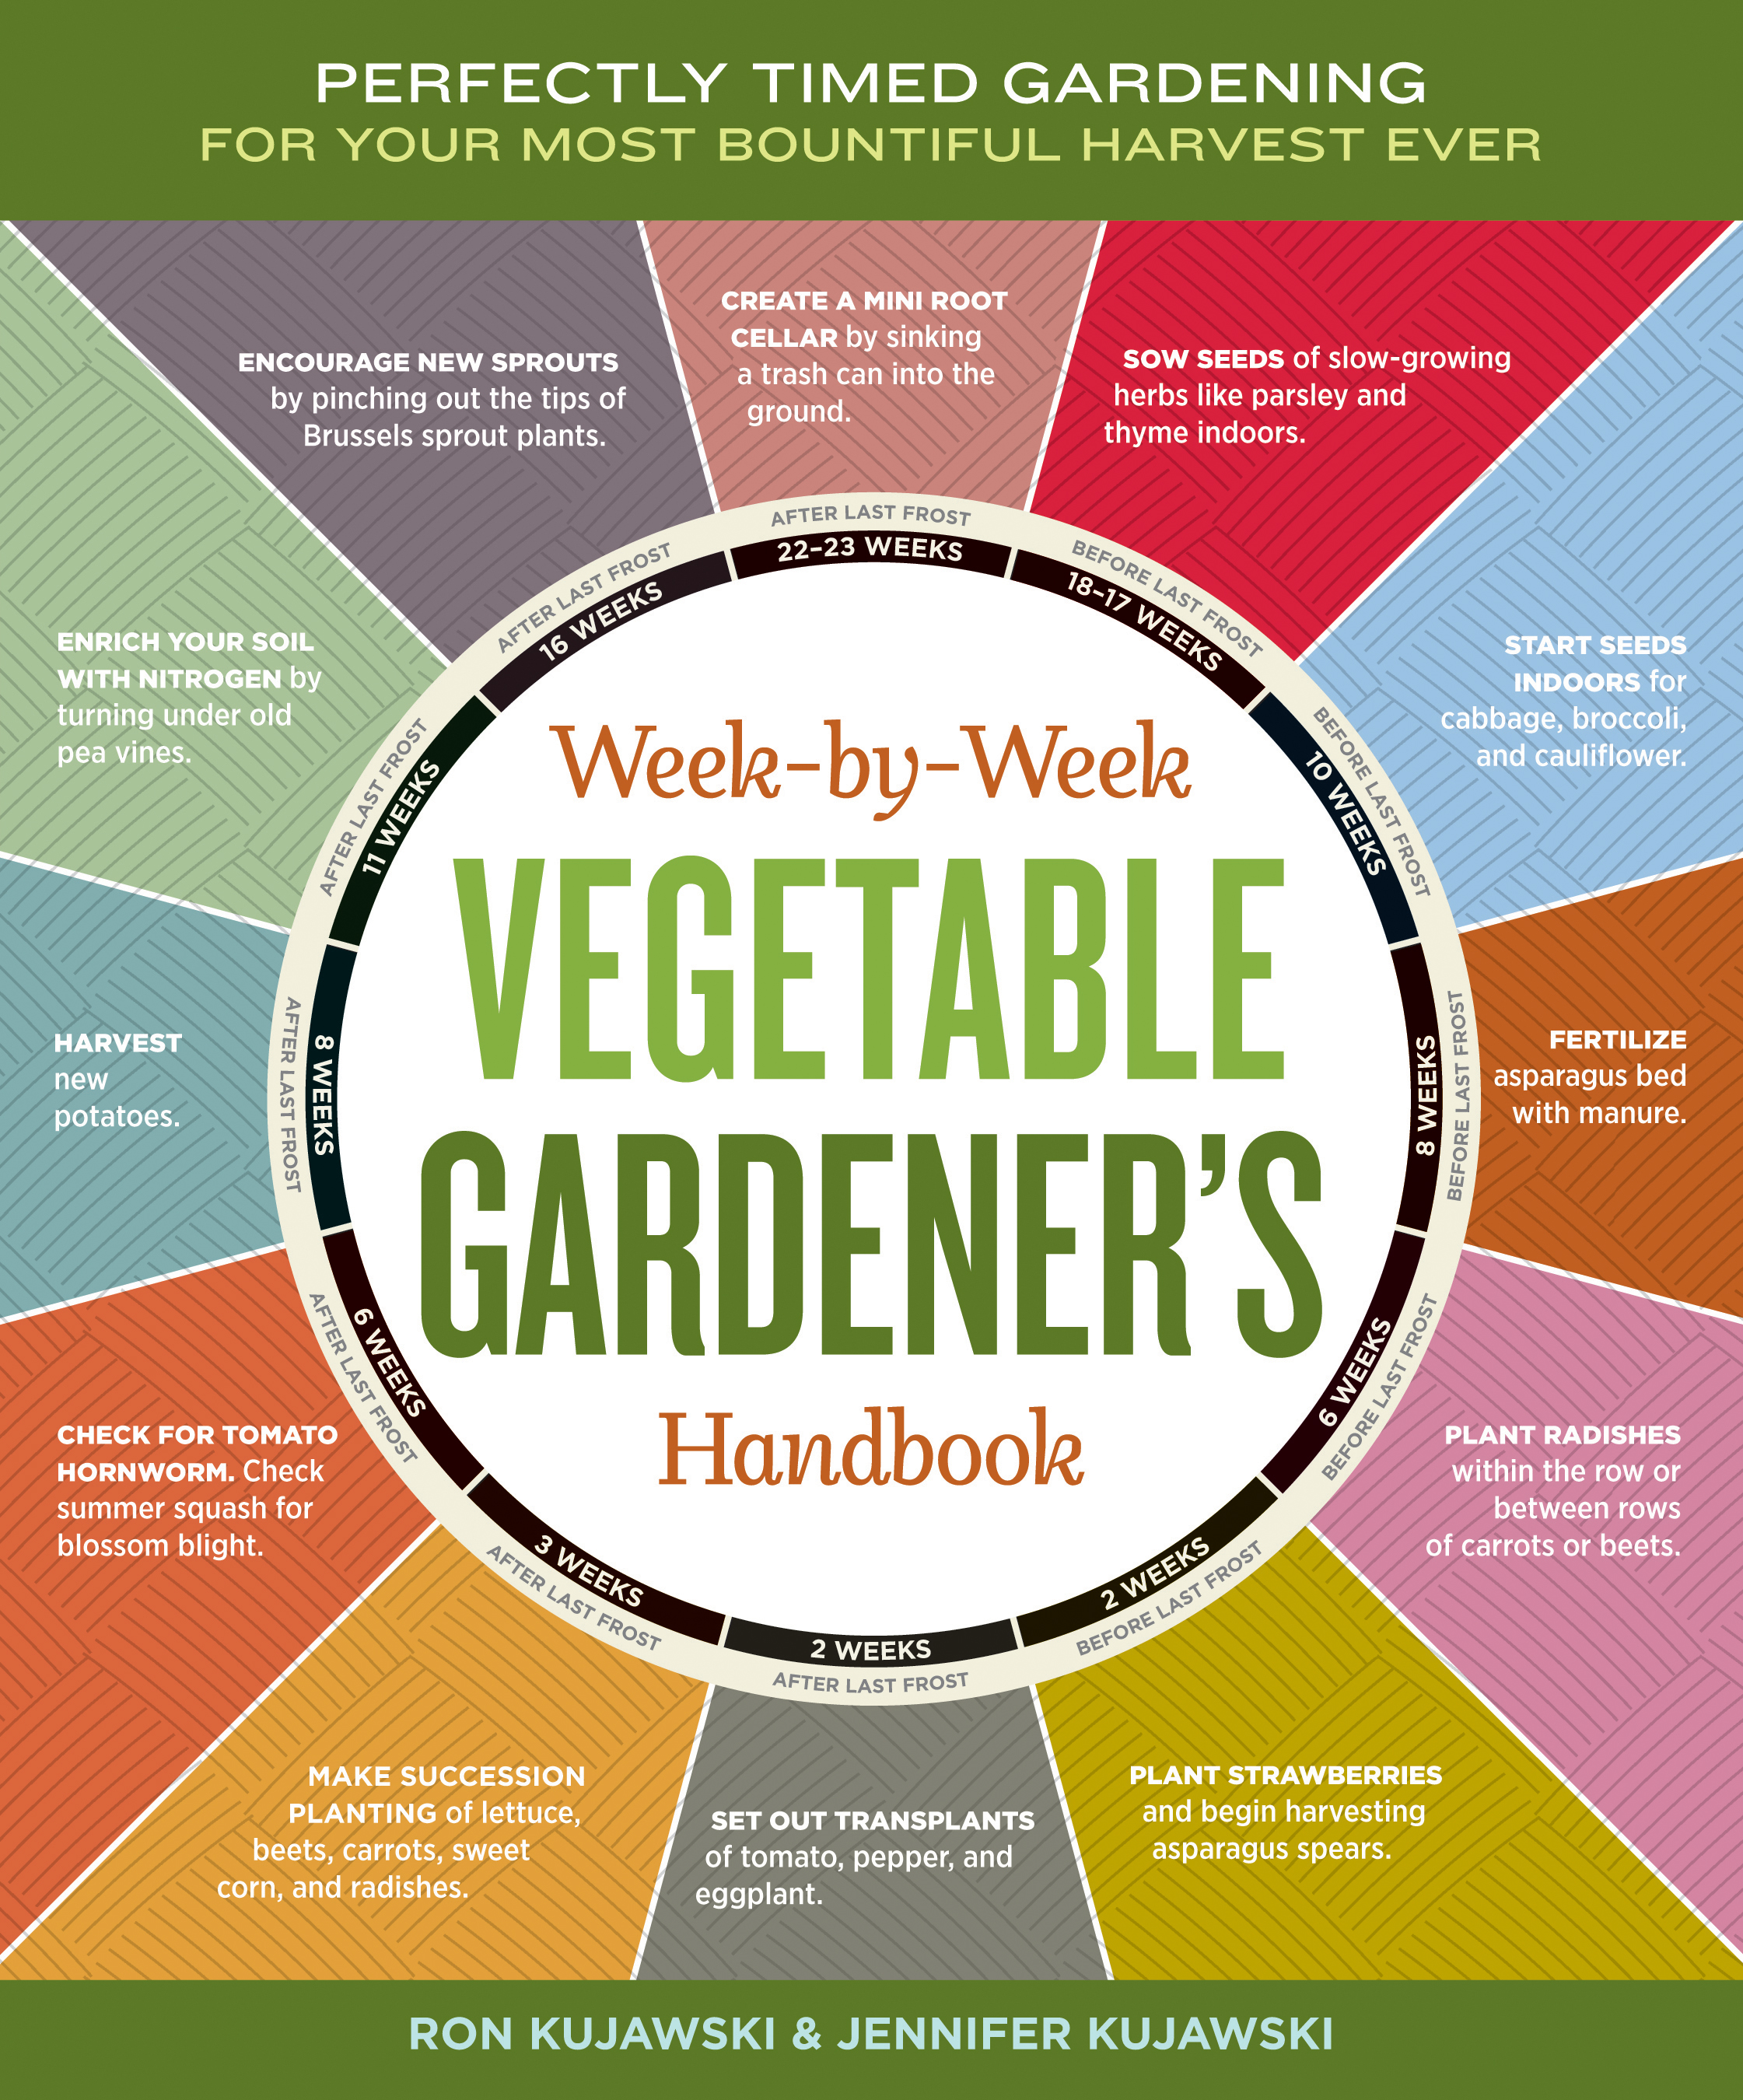 Week-by-Week Vegetable Gardener's Handbook Perfectly Timed Gardening for Your Most Bountiful Harvest Ever - Jennifer Kujawski